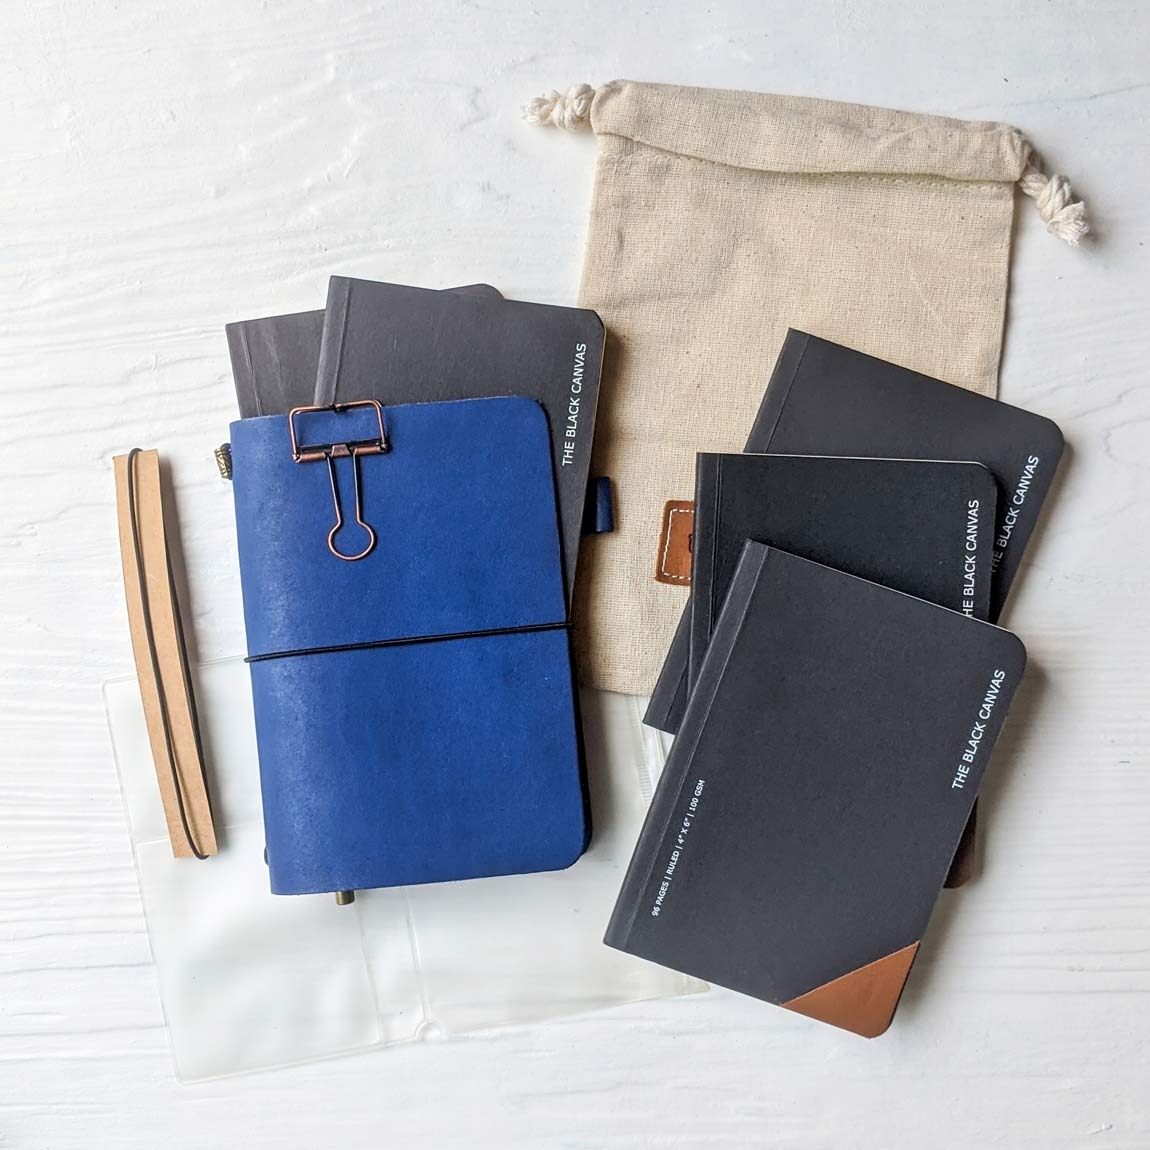 TBC Travellers Journal + TBC Notebooks Bundle